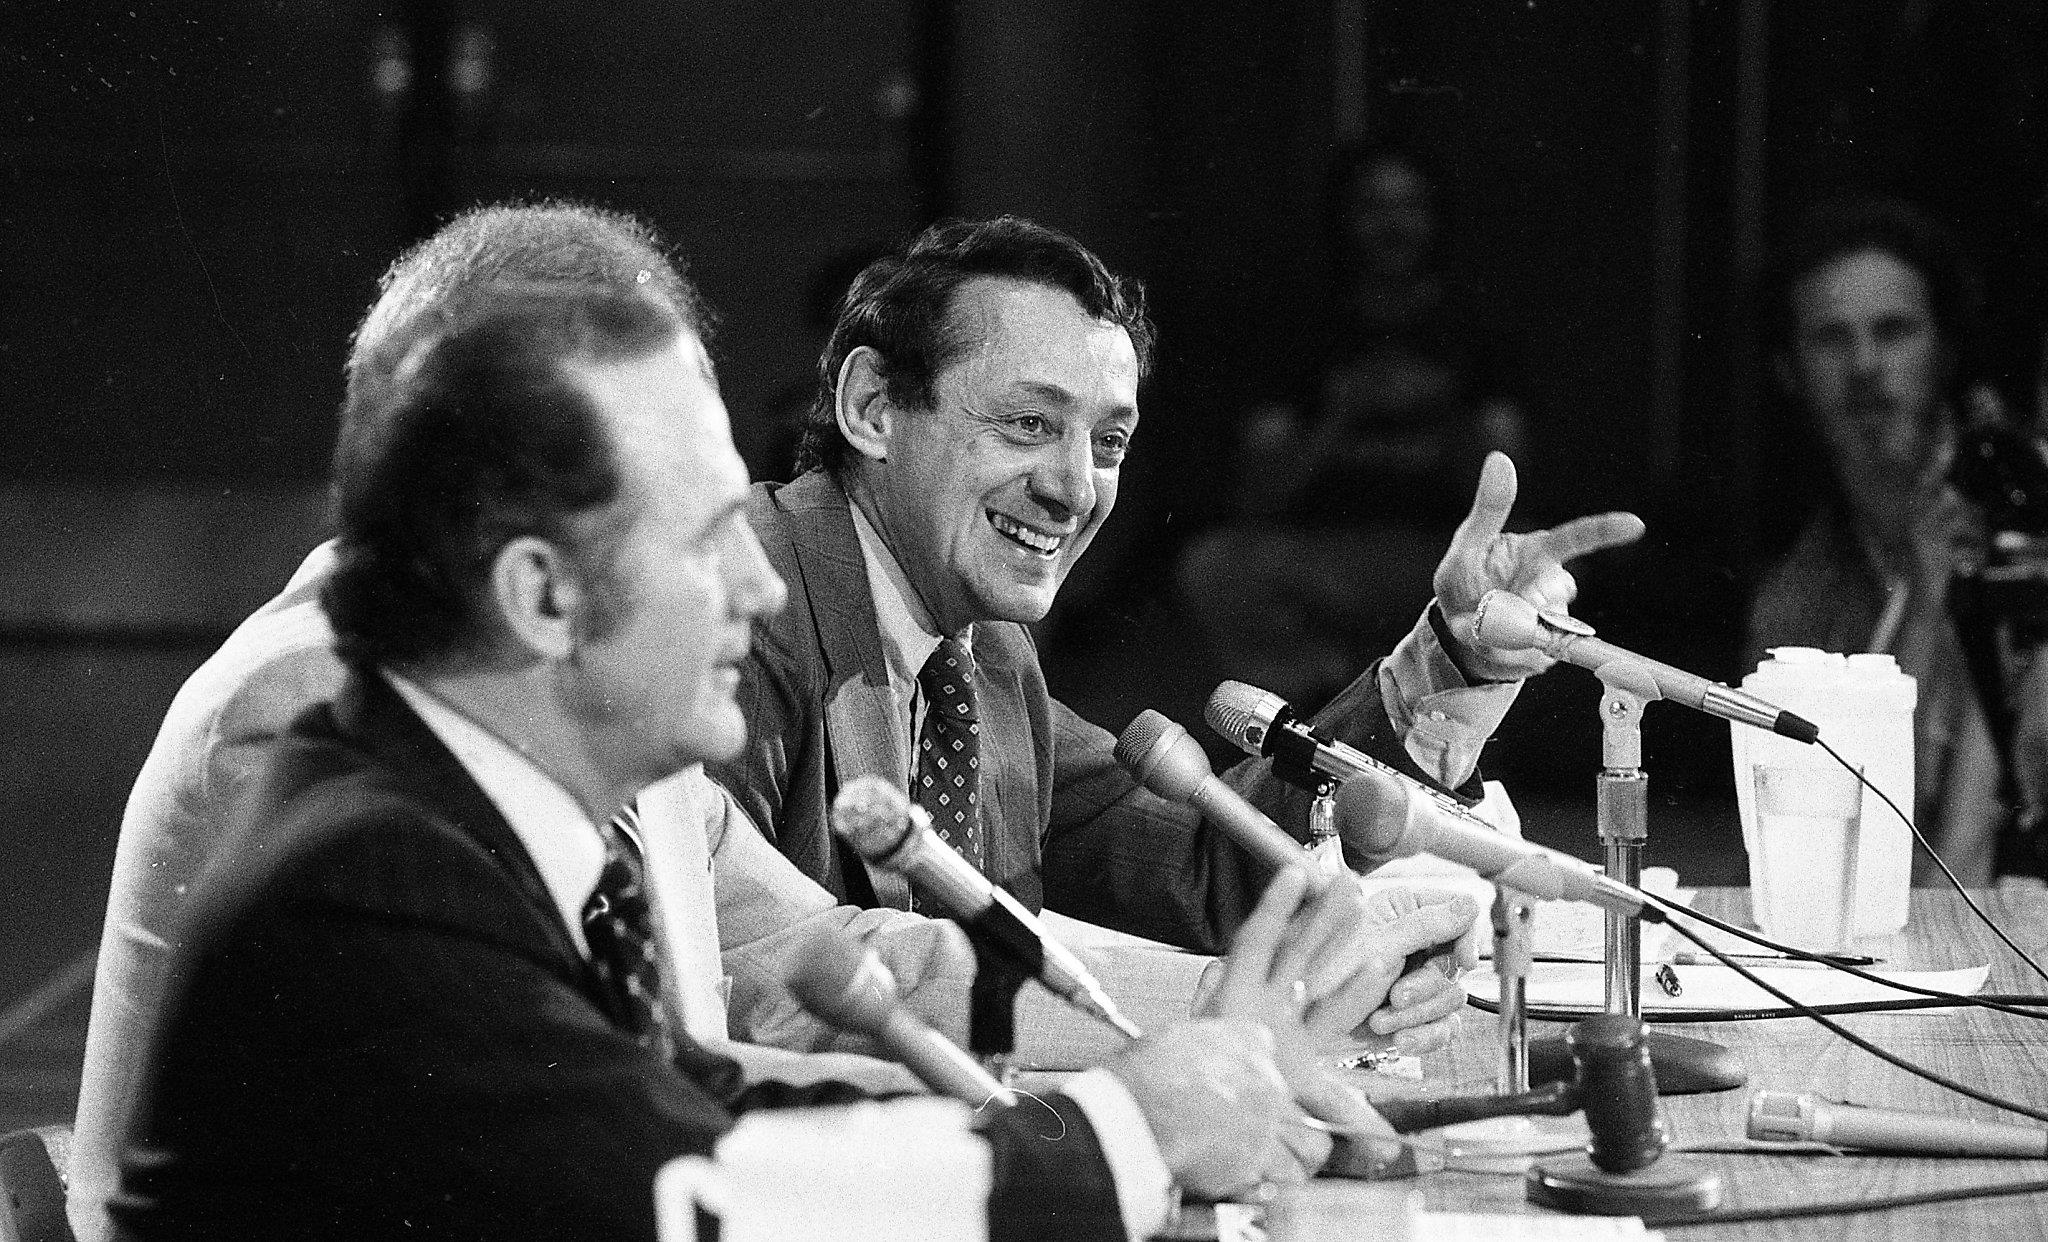 Harvey Milk's last fight: Found photos from landmark debate over gay teachers - SFChronicle.com